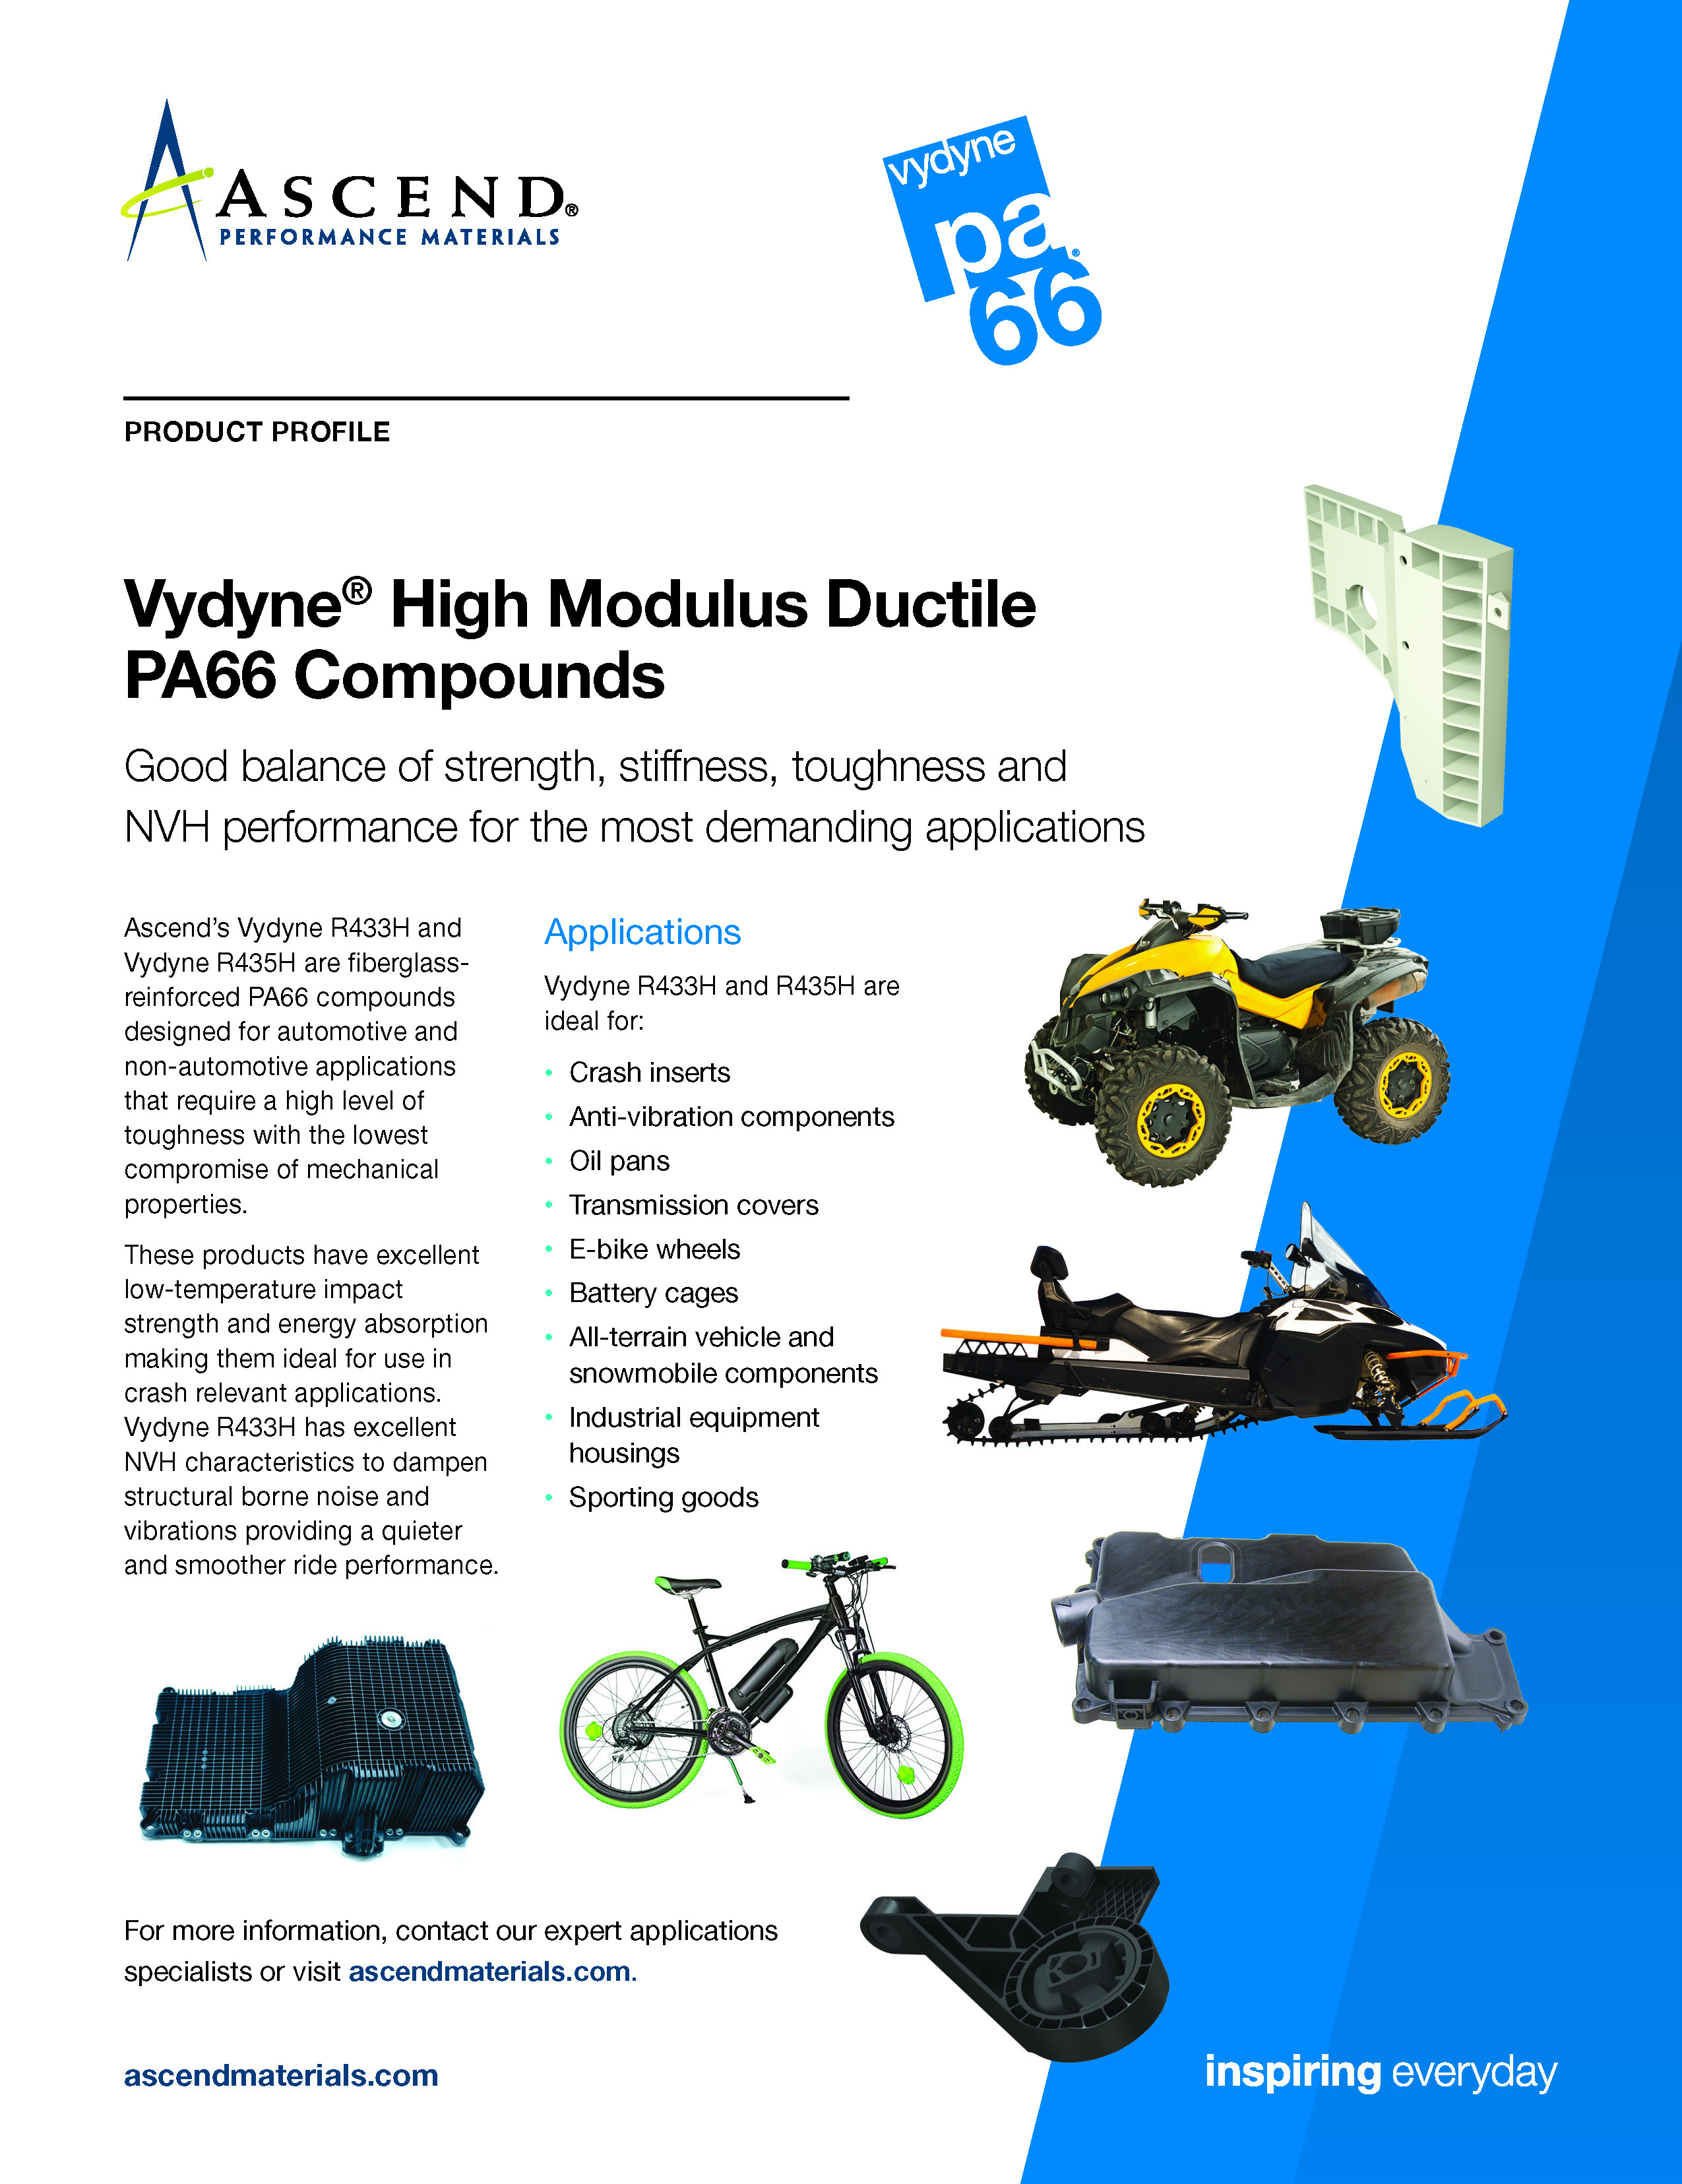 Vydyne® High Modulus Ductile PA66 Compounds